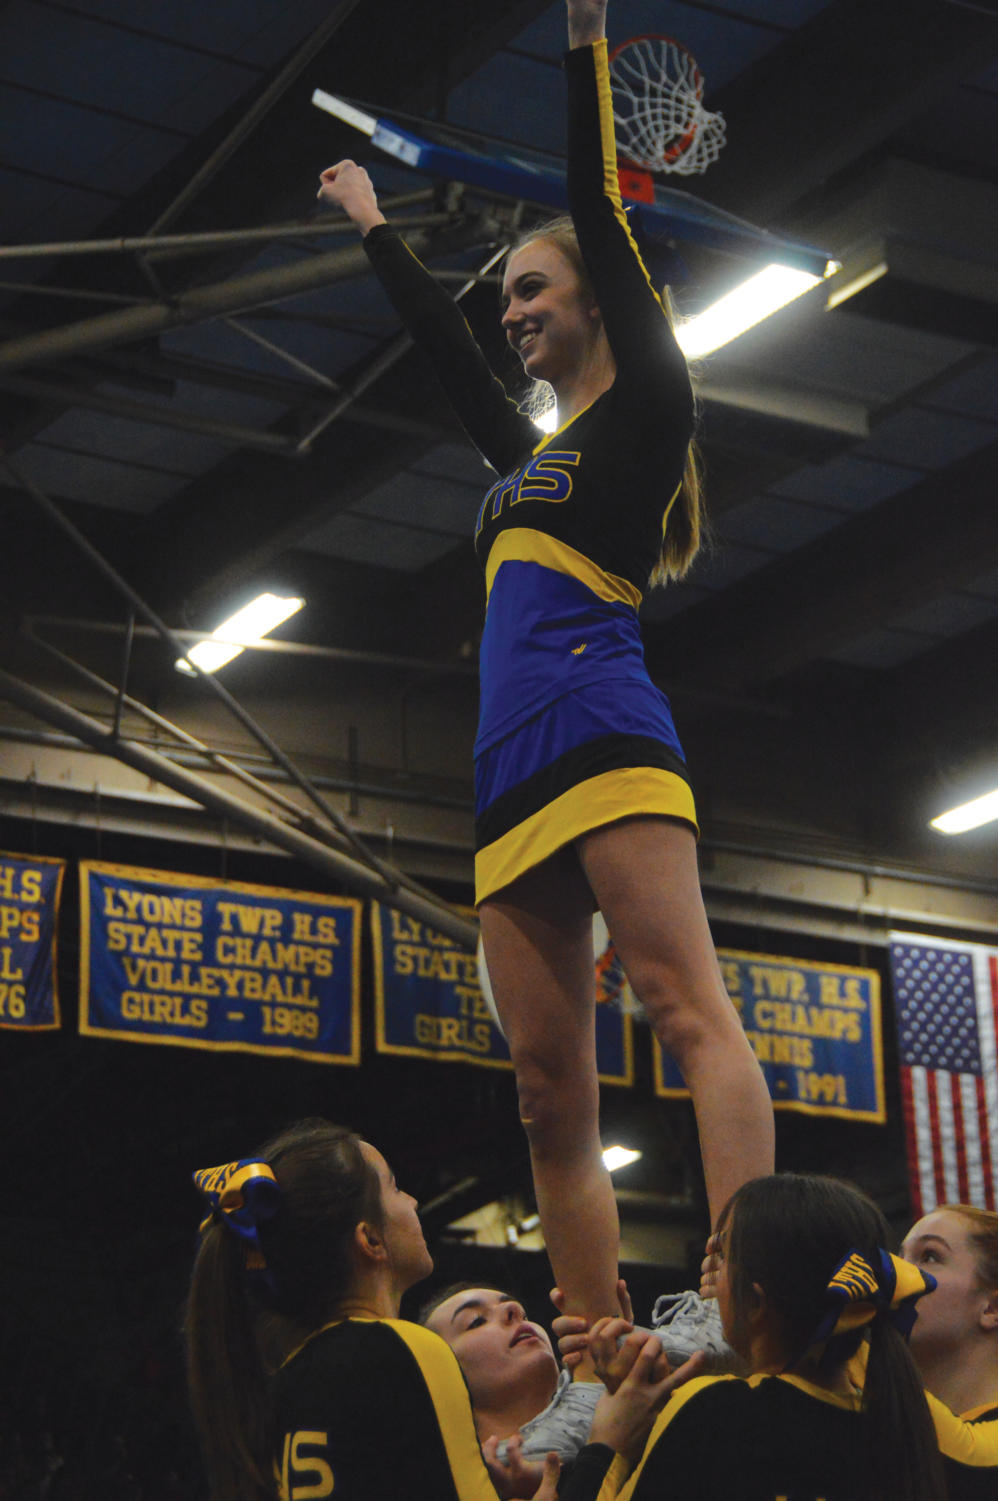 Cheerleader+stands+triumphantly+on+top+of+the+human+pyramid.